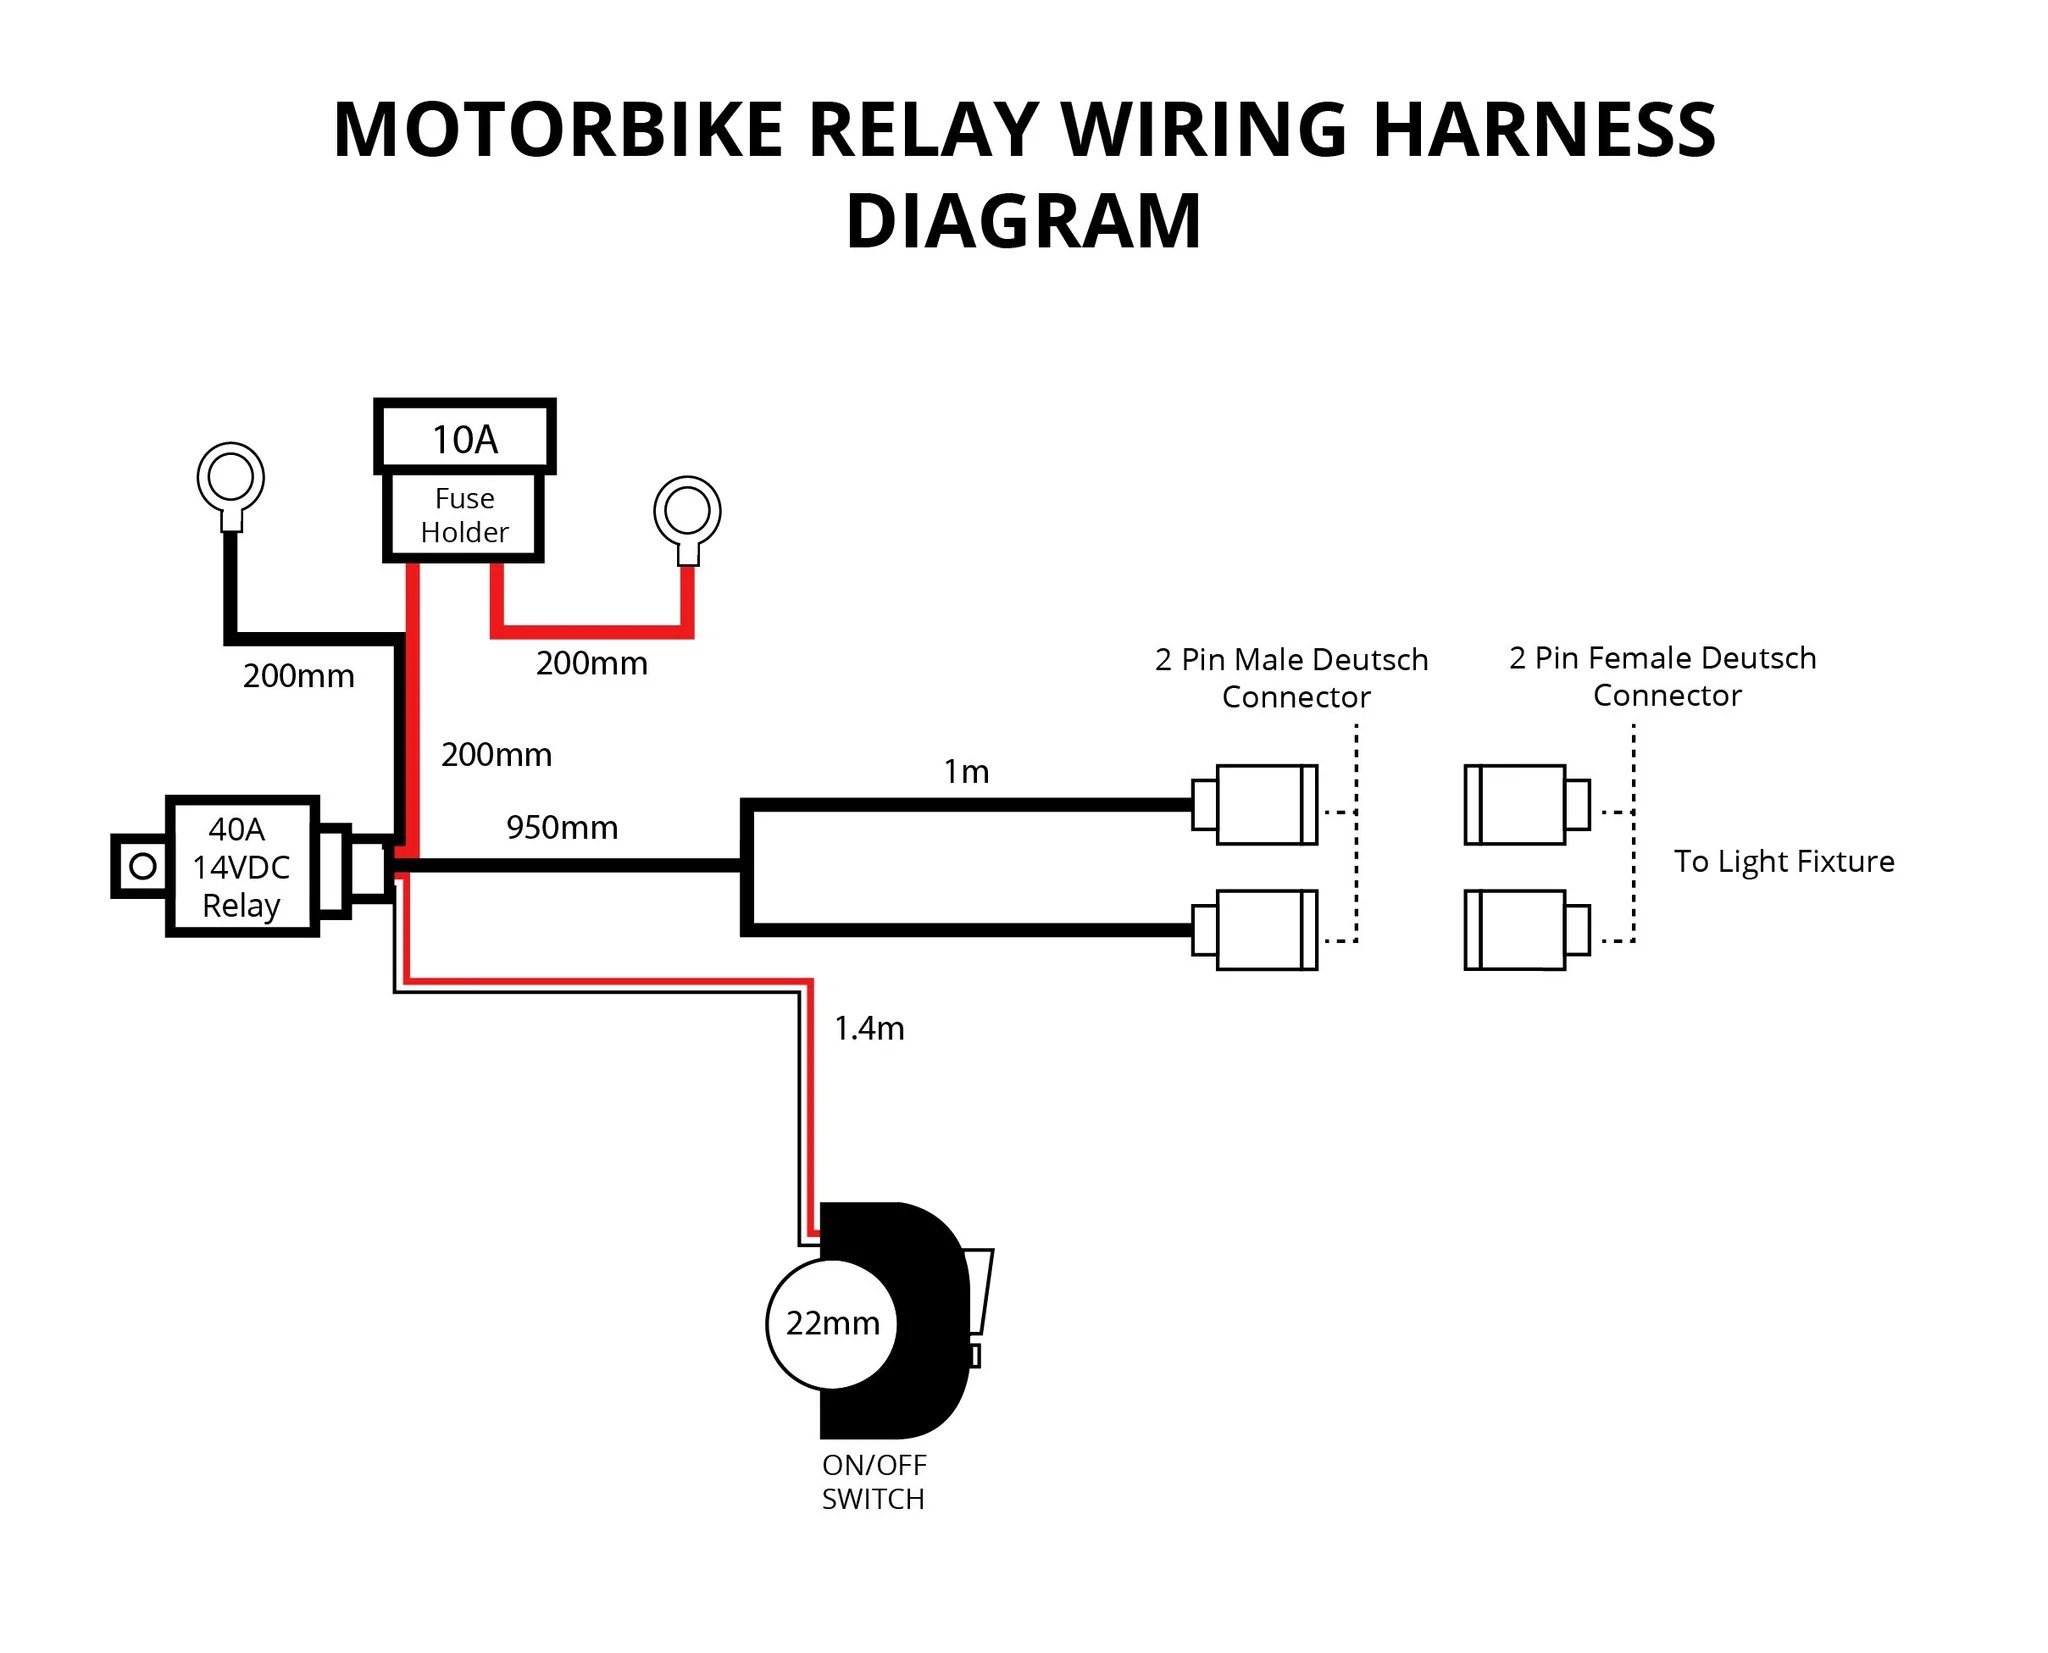 piaa relay wiring diagram for lights marlin glenfield 60 piaa relay switch piaa relay switch [ 2048 x 1653 Pixel ]